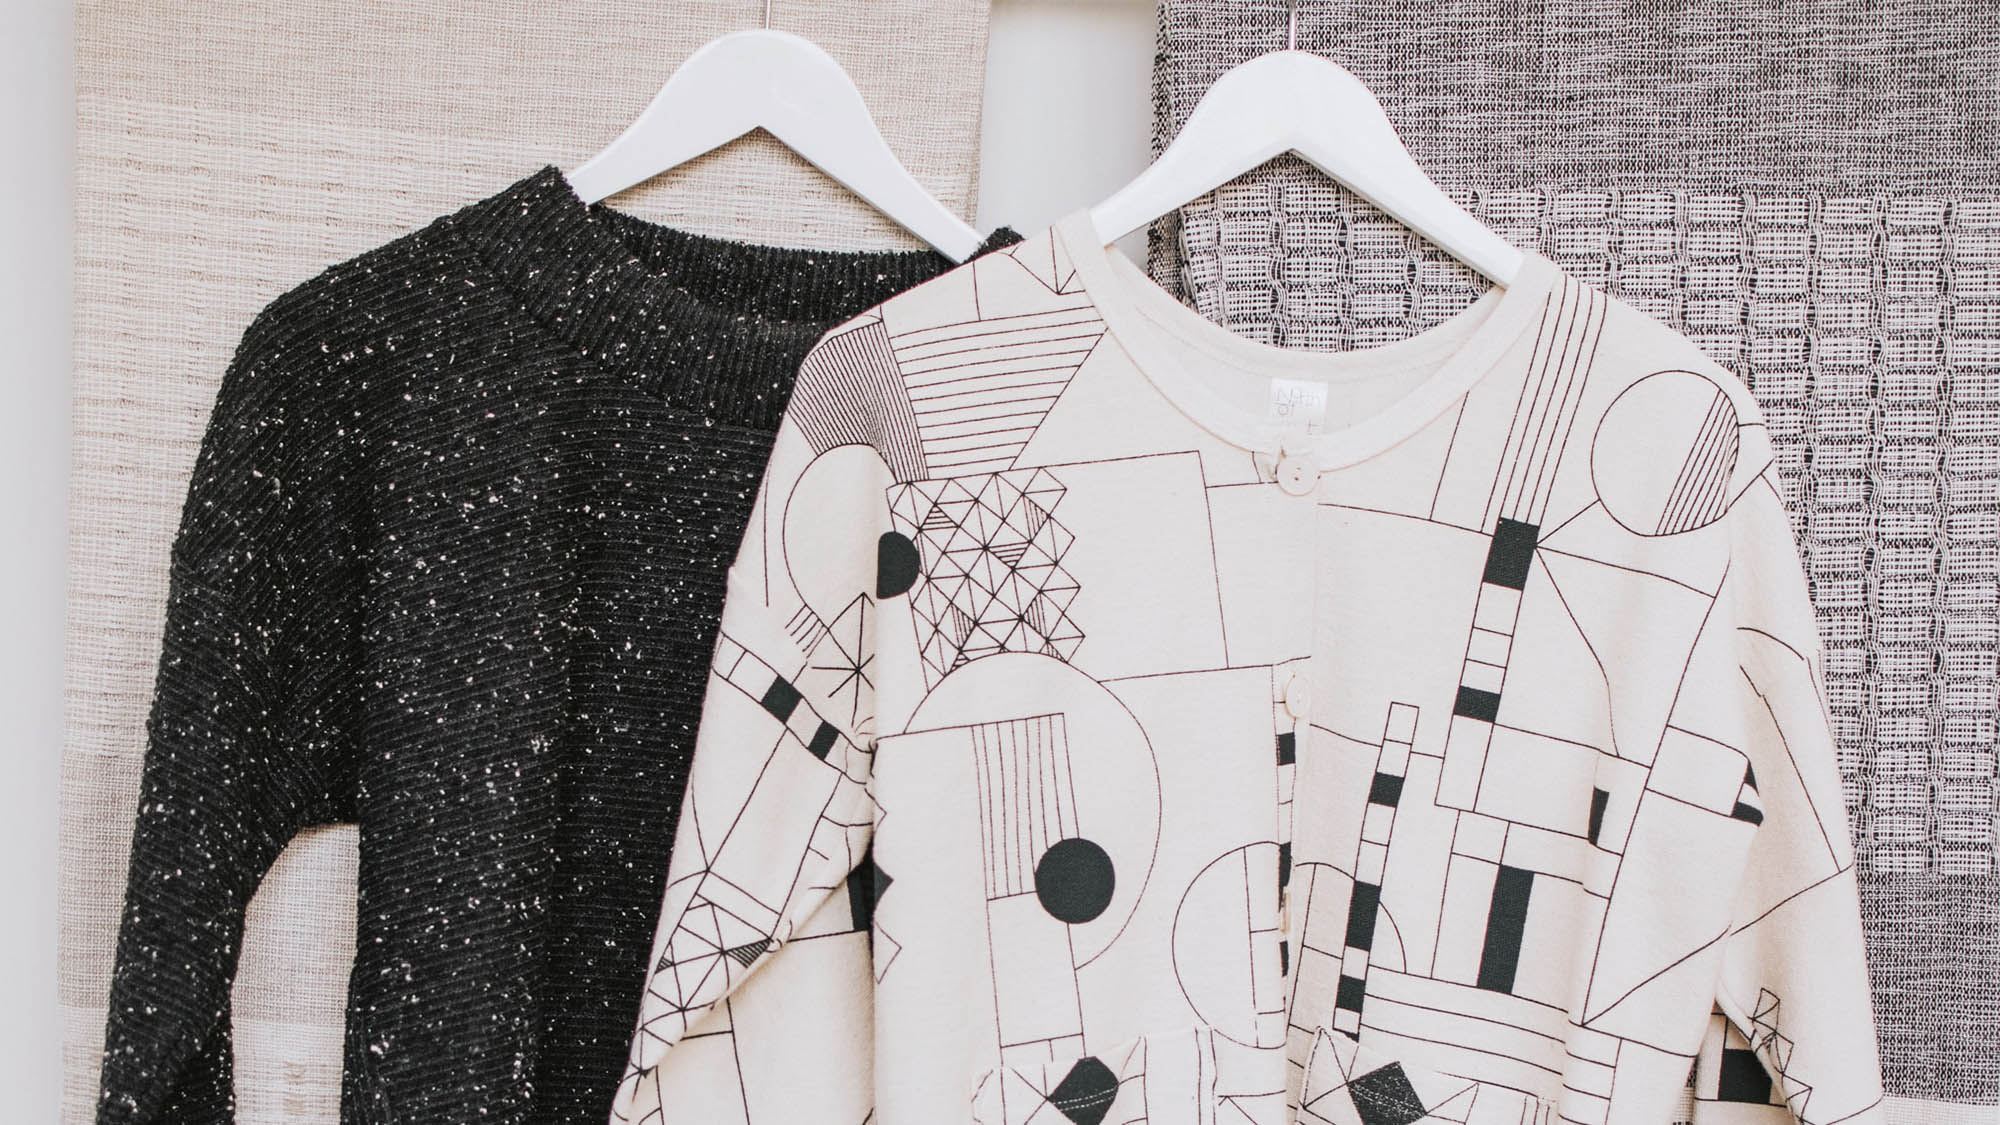 Black knit sweater hanging beside white sweater with geometric print